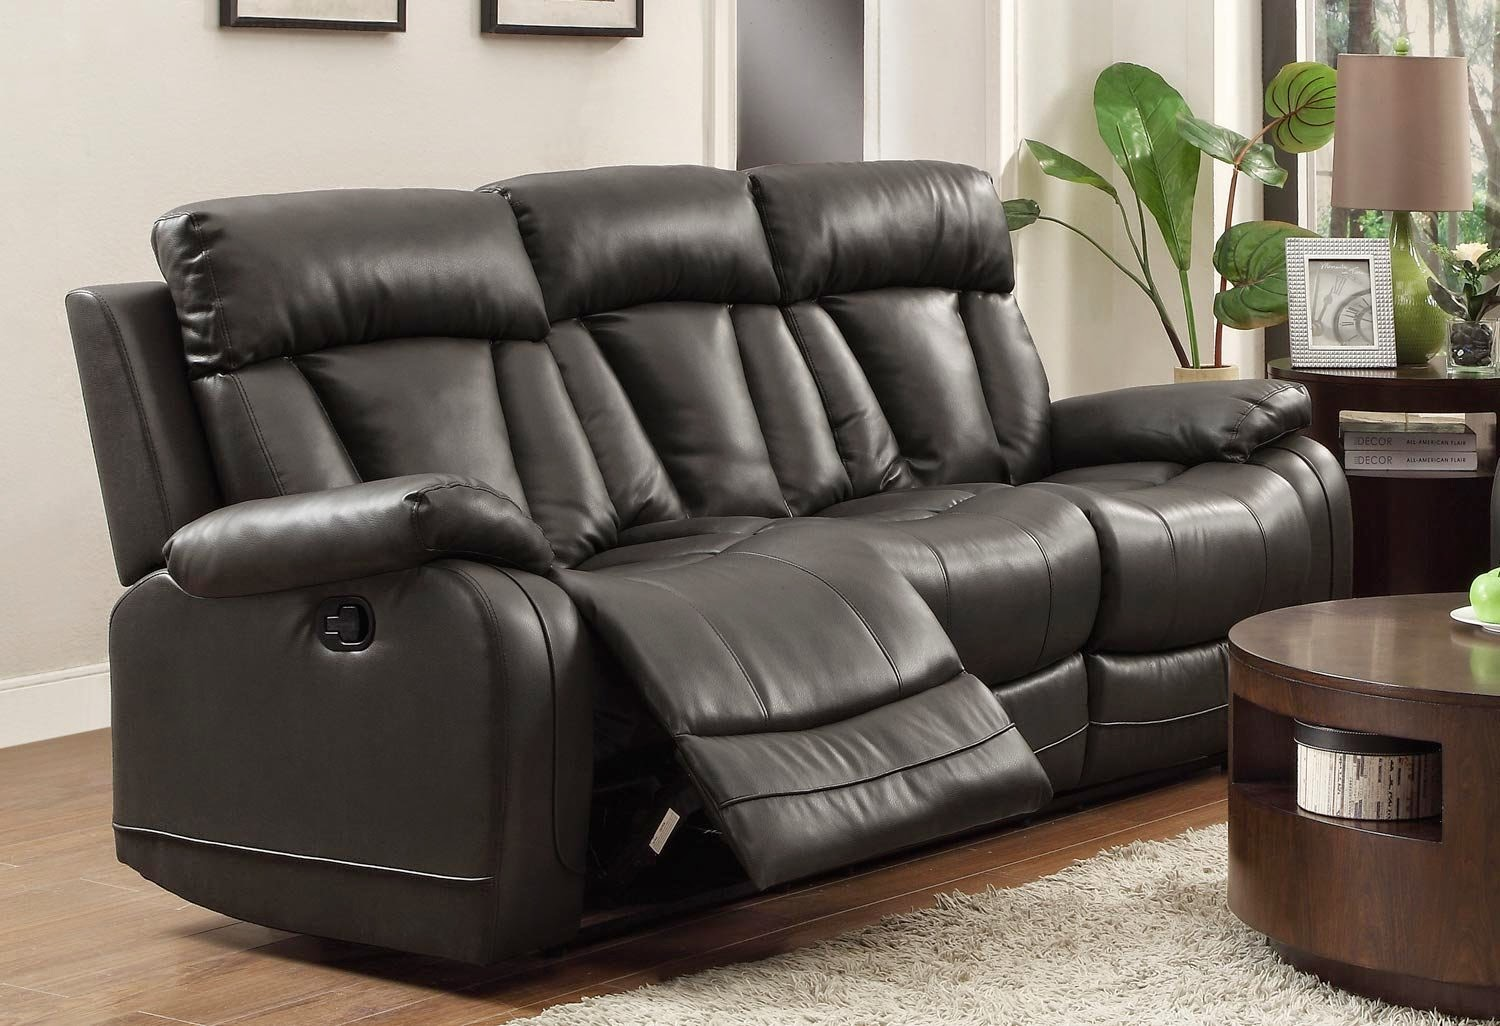 Broyhill Sofa And Loveseat Decorating Living Room Black Leather Recliner Sofas Best 25 Double